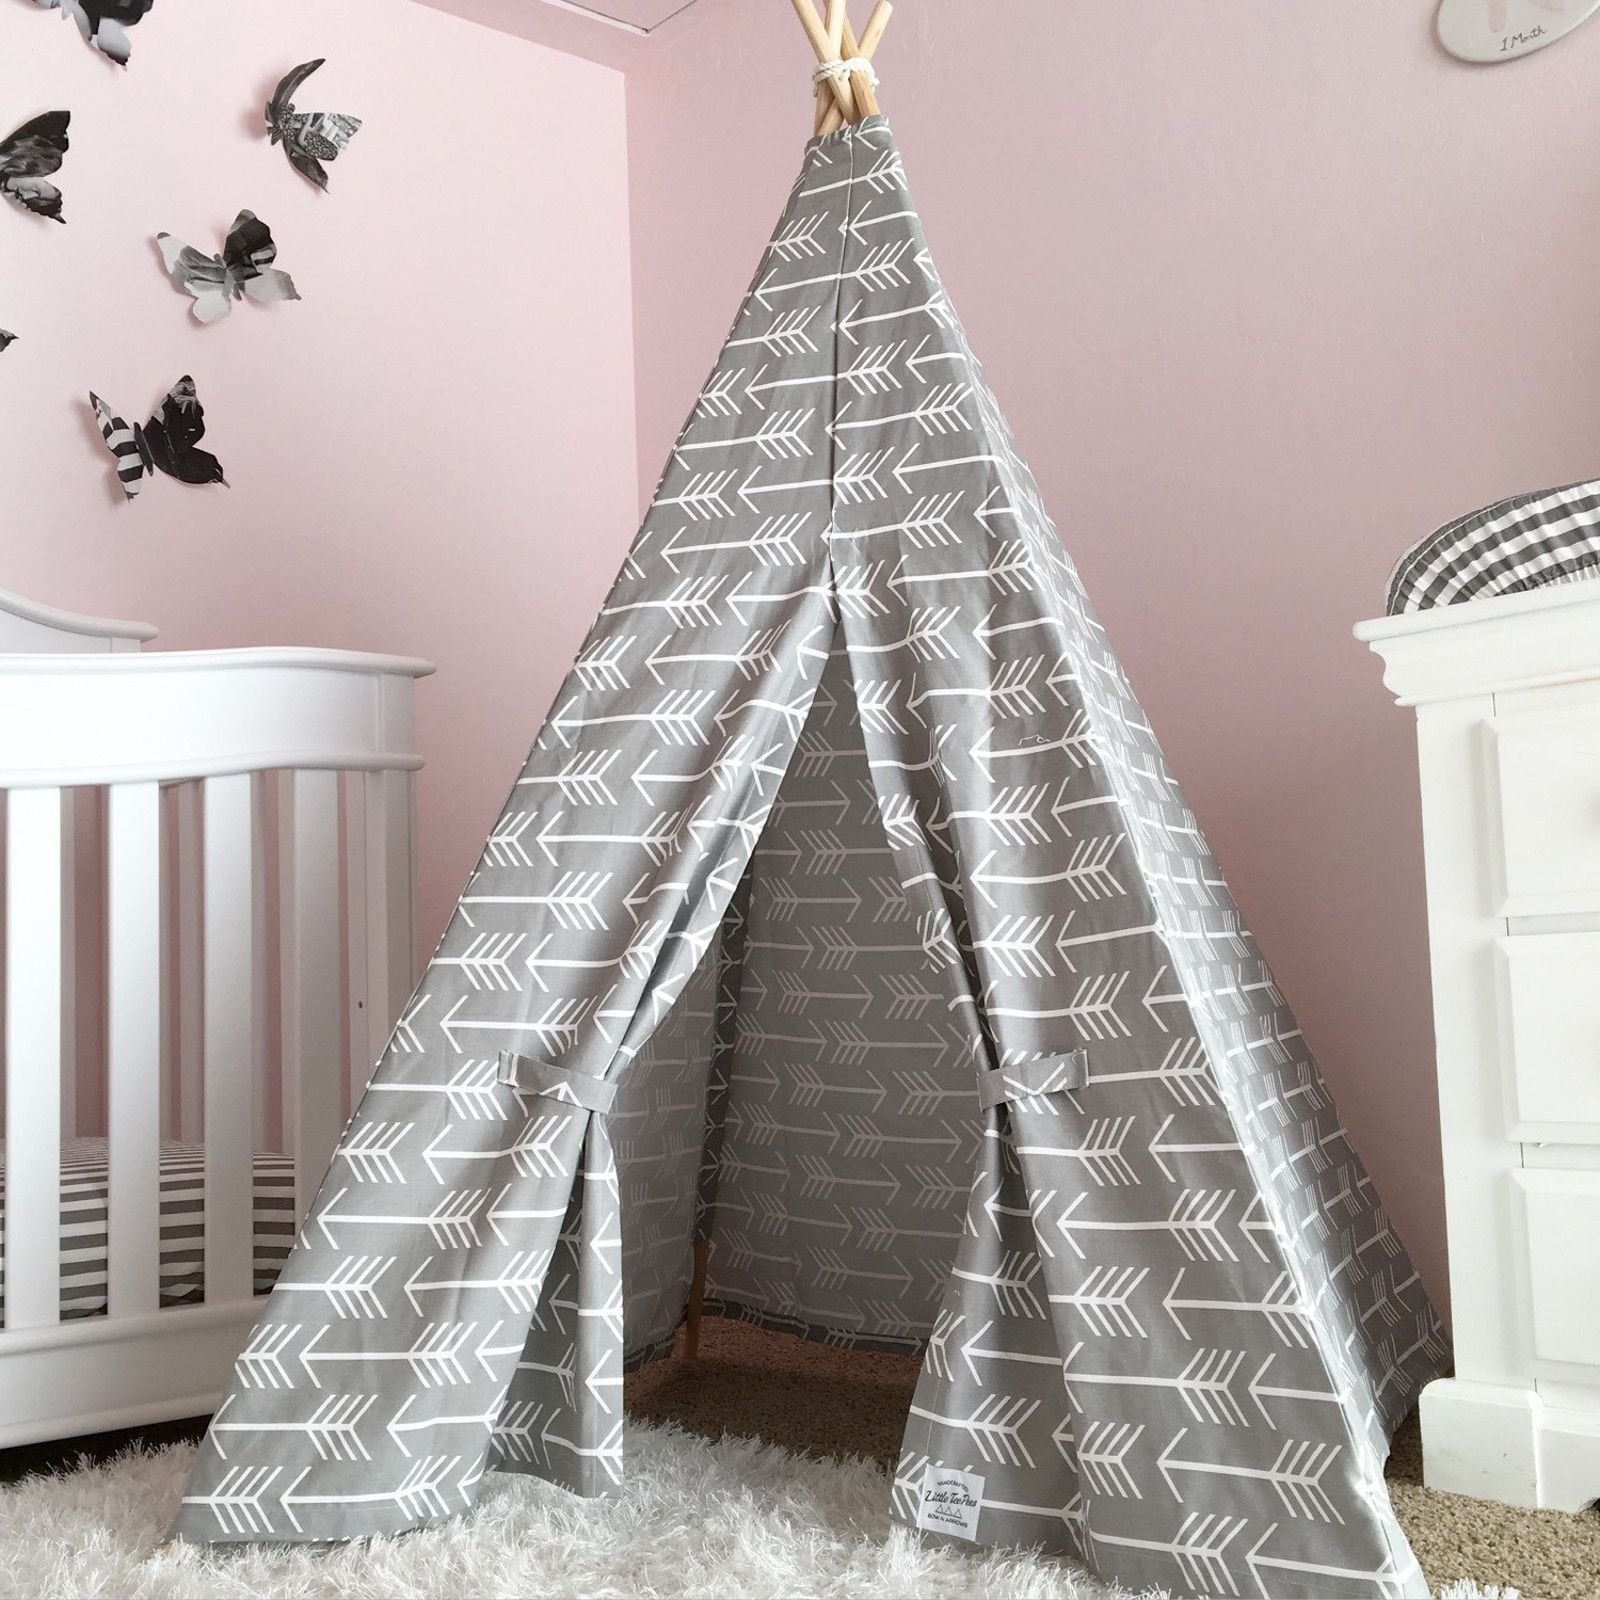 Handmade in USA by Little Brave Ones adorable kids tee pee made from & Kids Gray Teepee Arrows | Kids tee pee Tents and Arrow